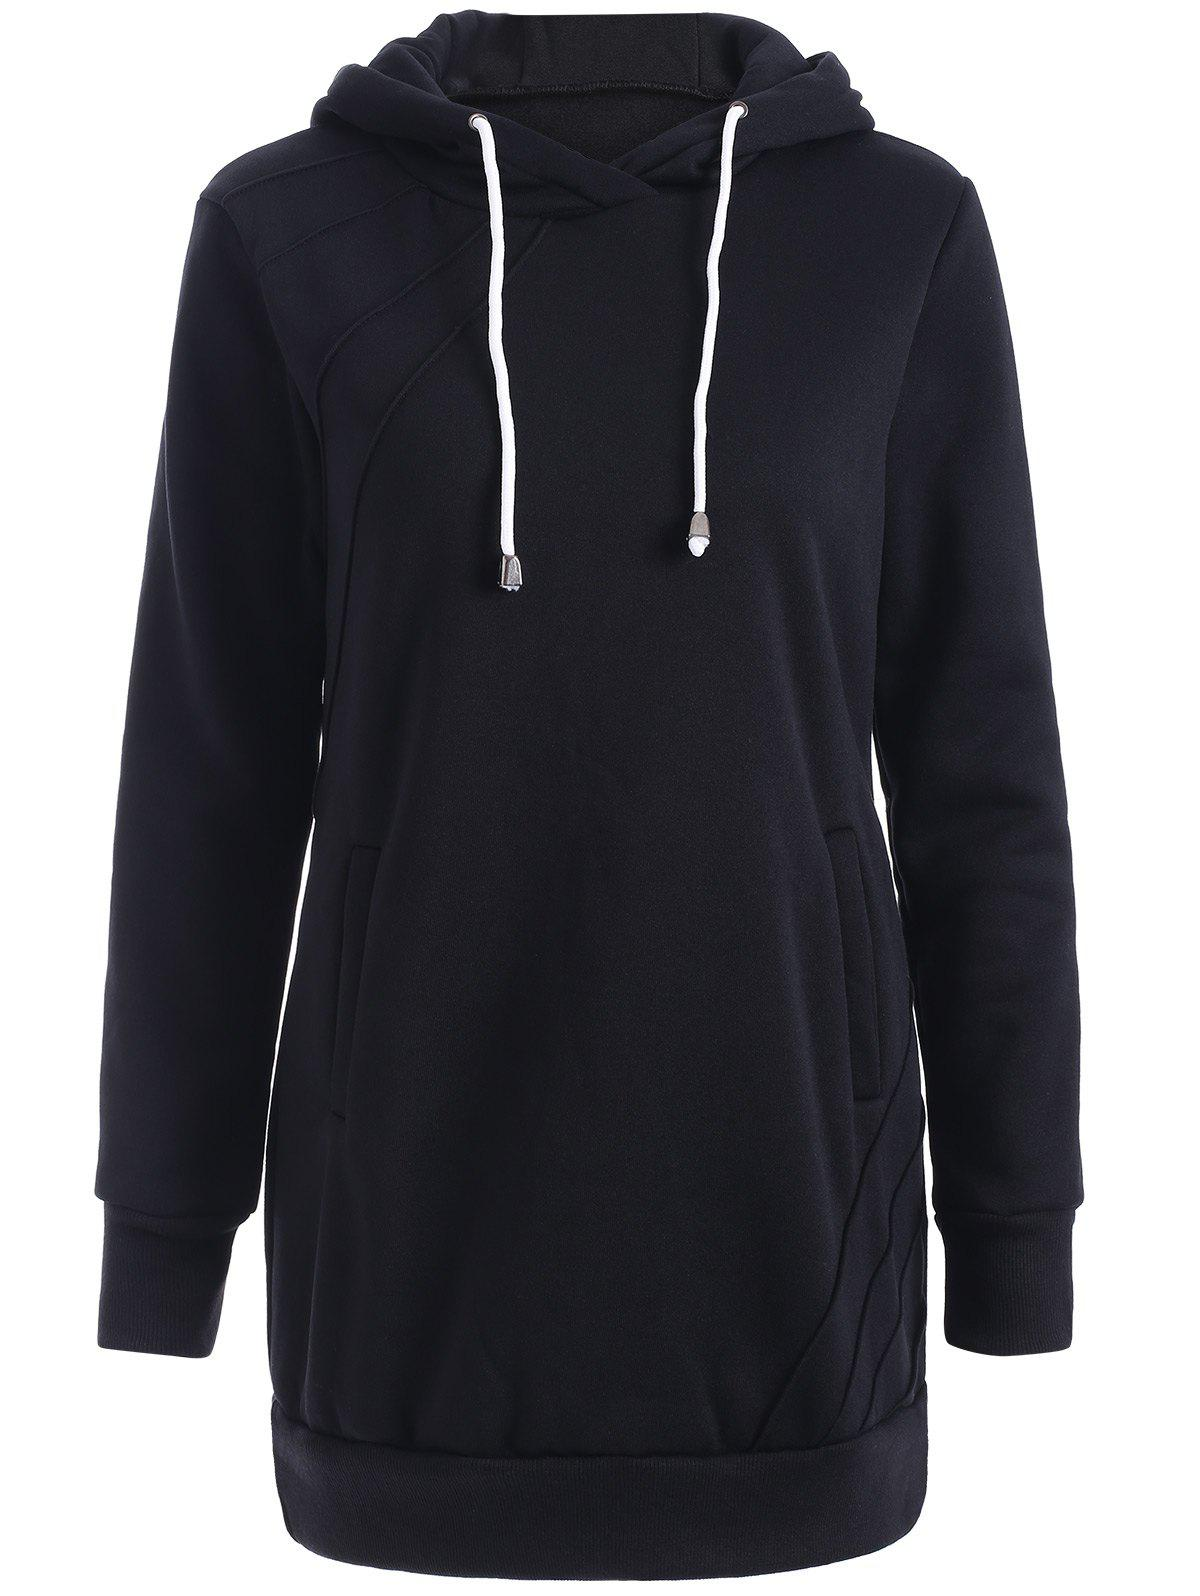 Hooded Long Sweatshirt - BLACK 2XL